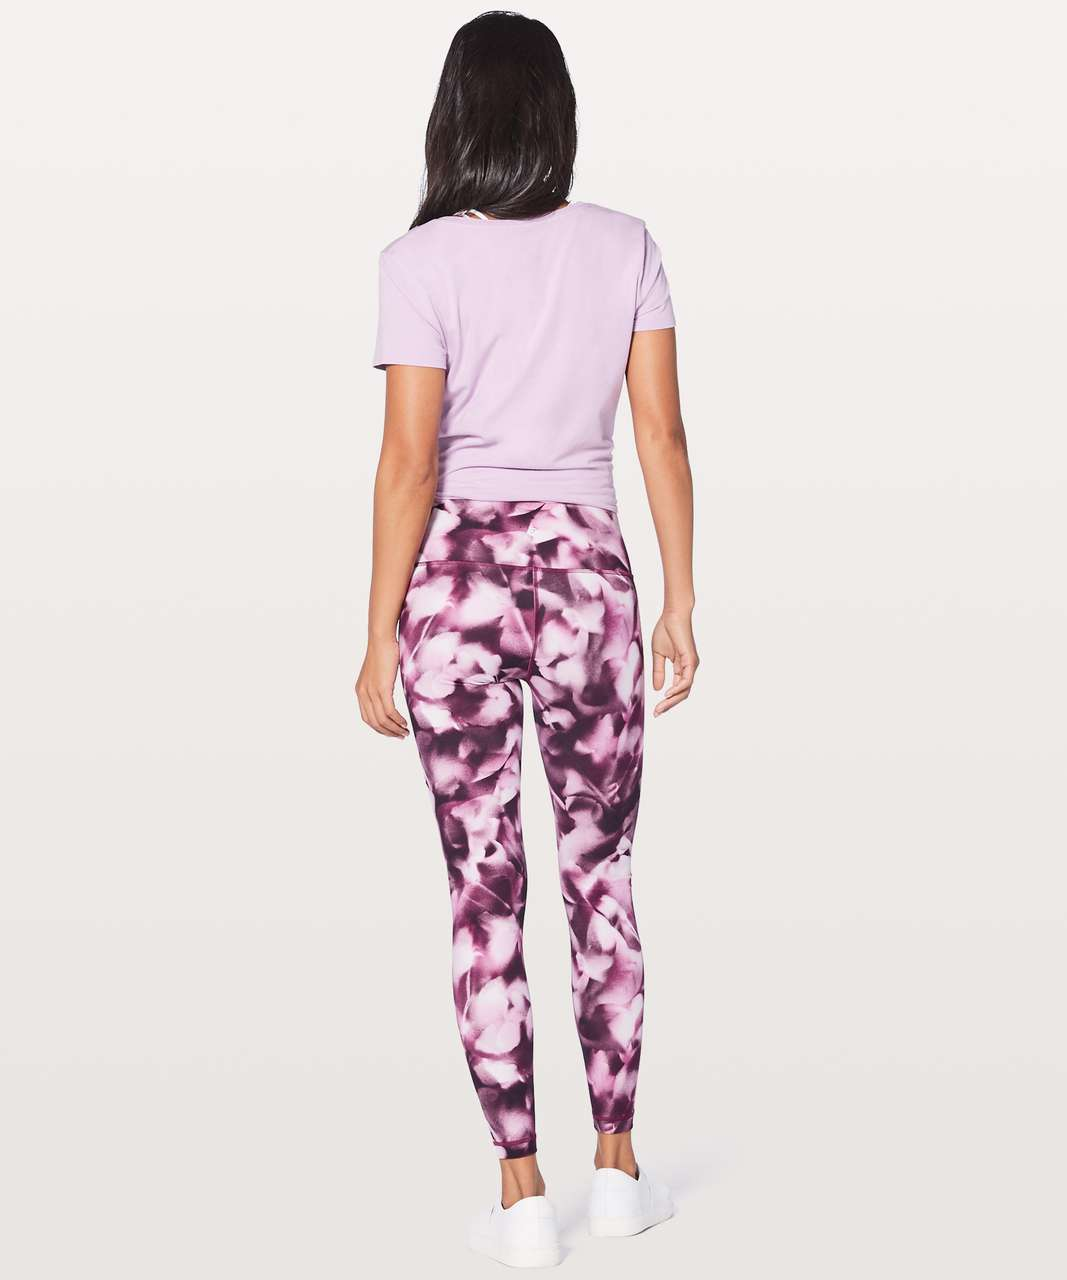 "Lululemon Wunder Under Hi-Rise Tight *Full-On Luxtreme 28"" - Blush Blossom Alpine White Candy Pink"